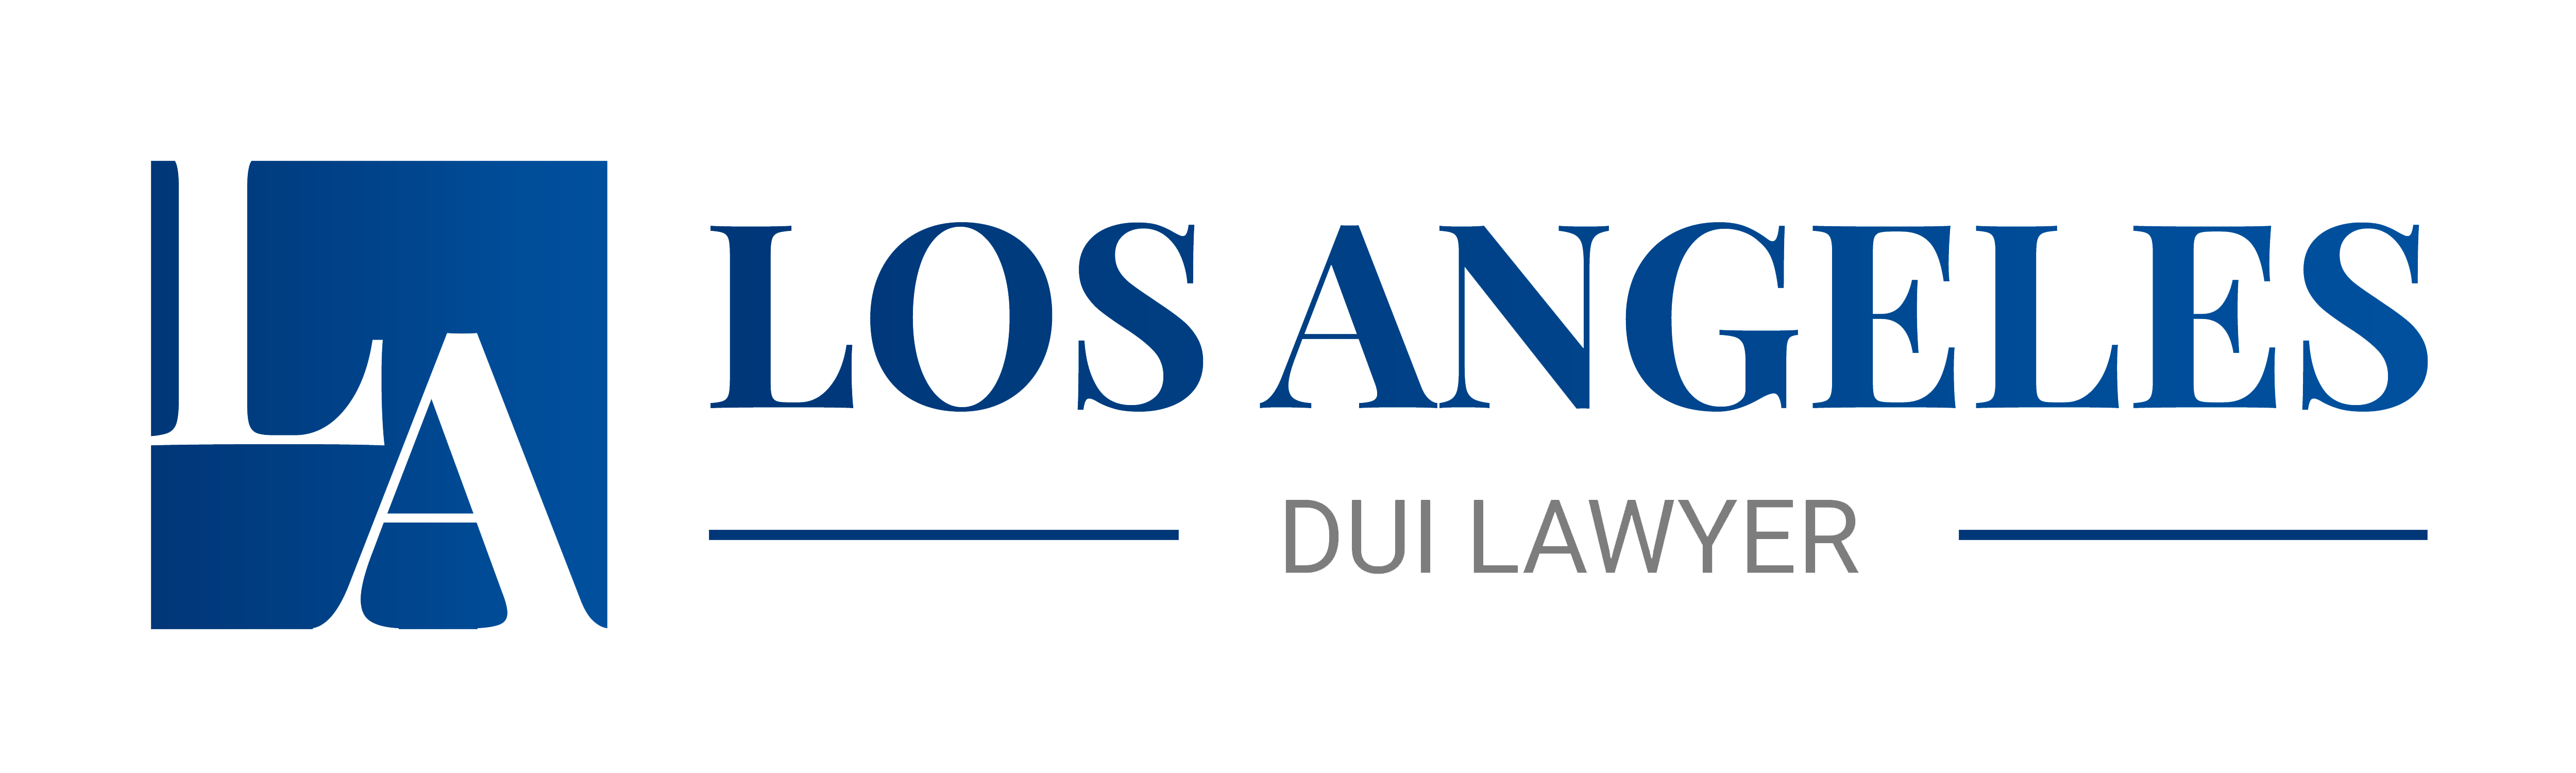 Los Angeles DUI Lawyer logo